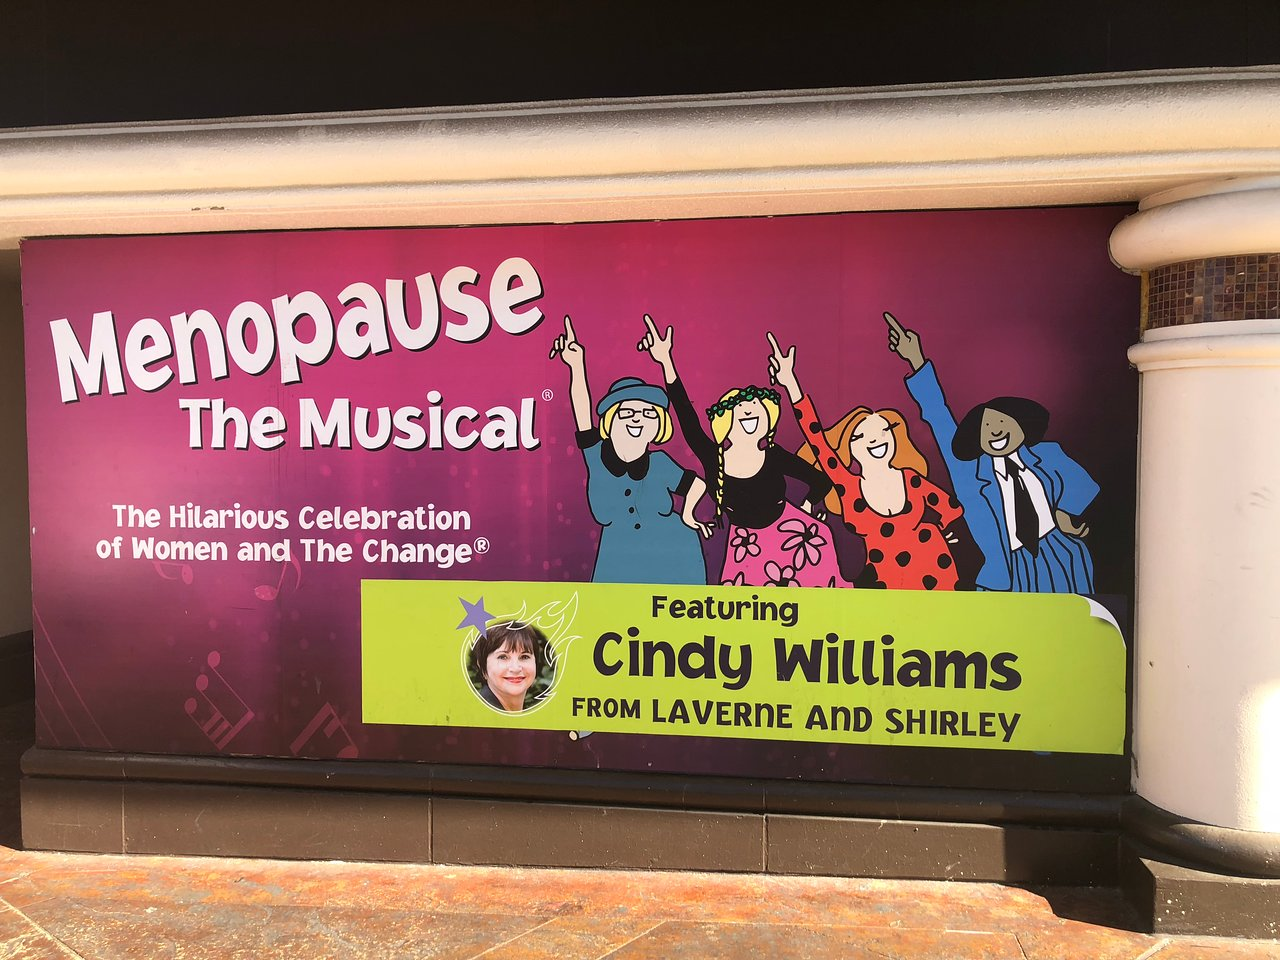 Menopause The Musical Las Vegas 2020 All You Need To Know Before You Go With Photos Tripadvisor